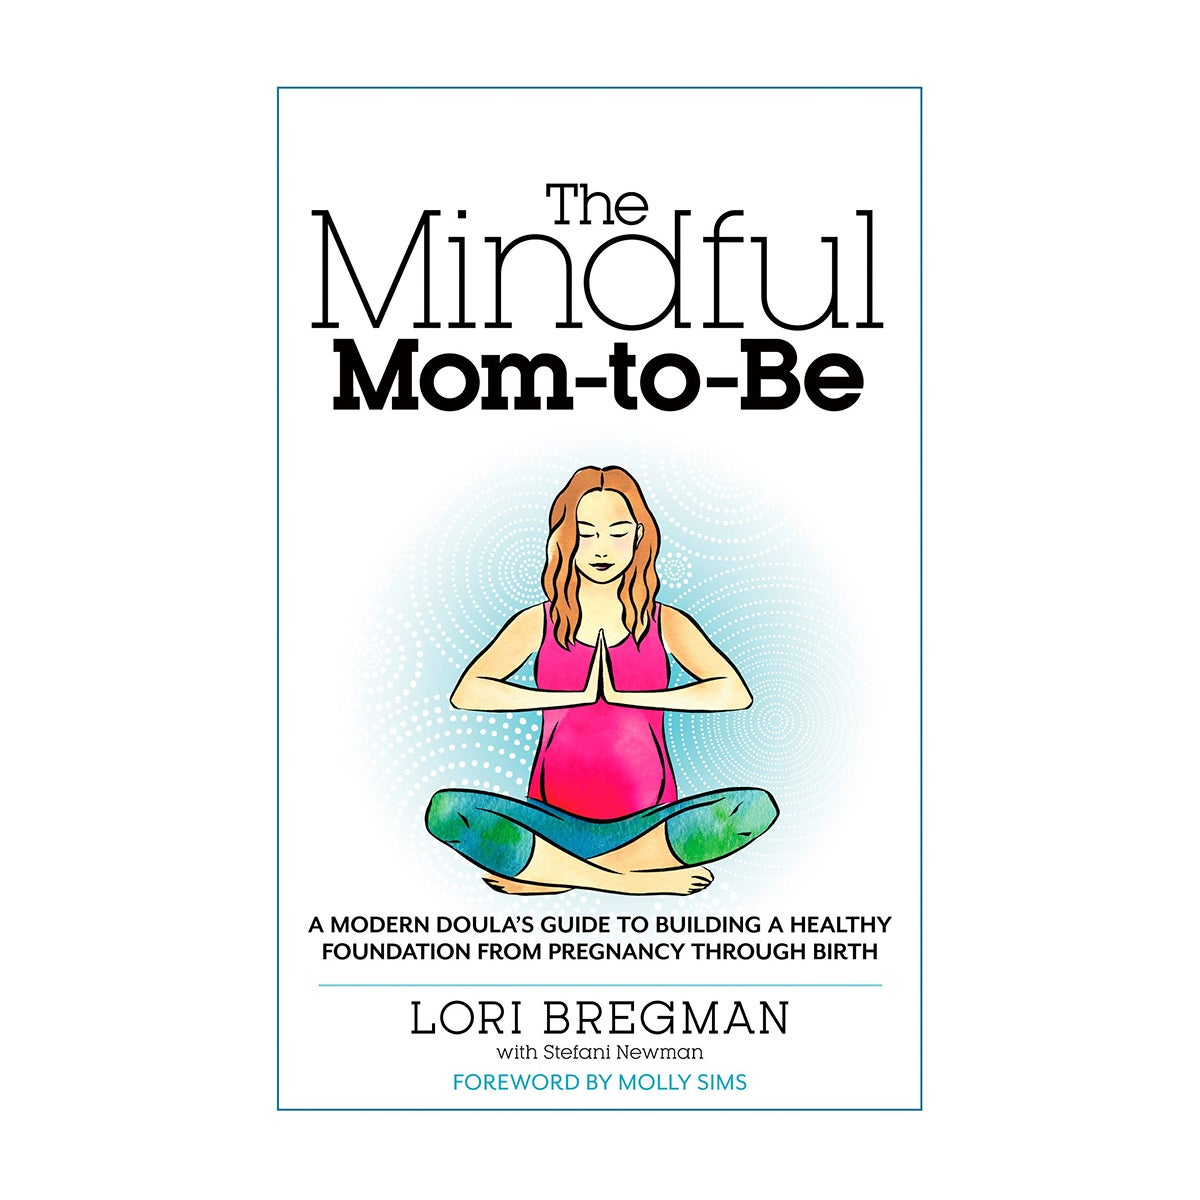 Lori Bregman The Mindful Mom-To-Be: A Modern Doula's Guide to Building a Healthy Foundation from Pregnancy Through Birth